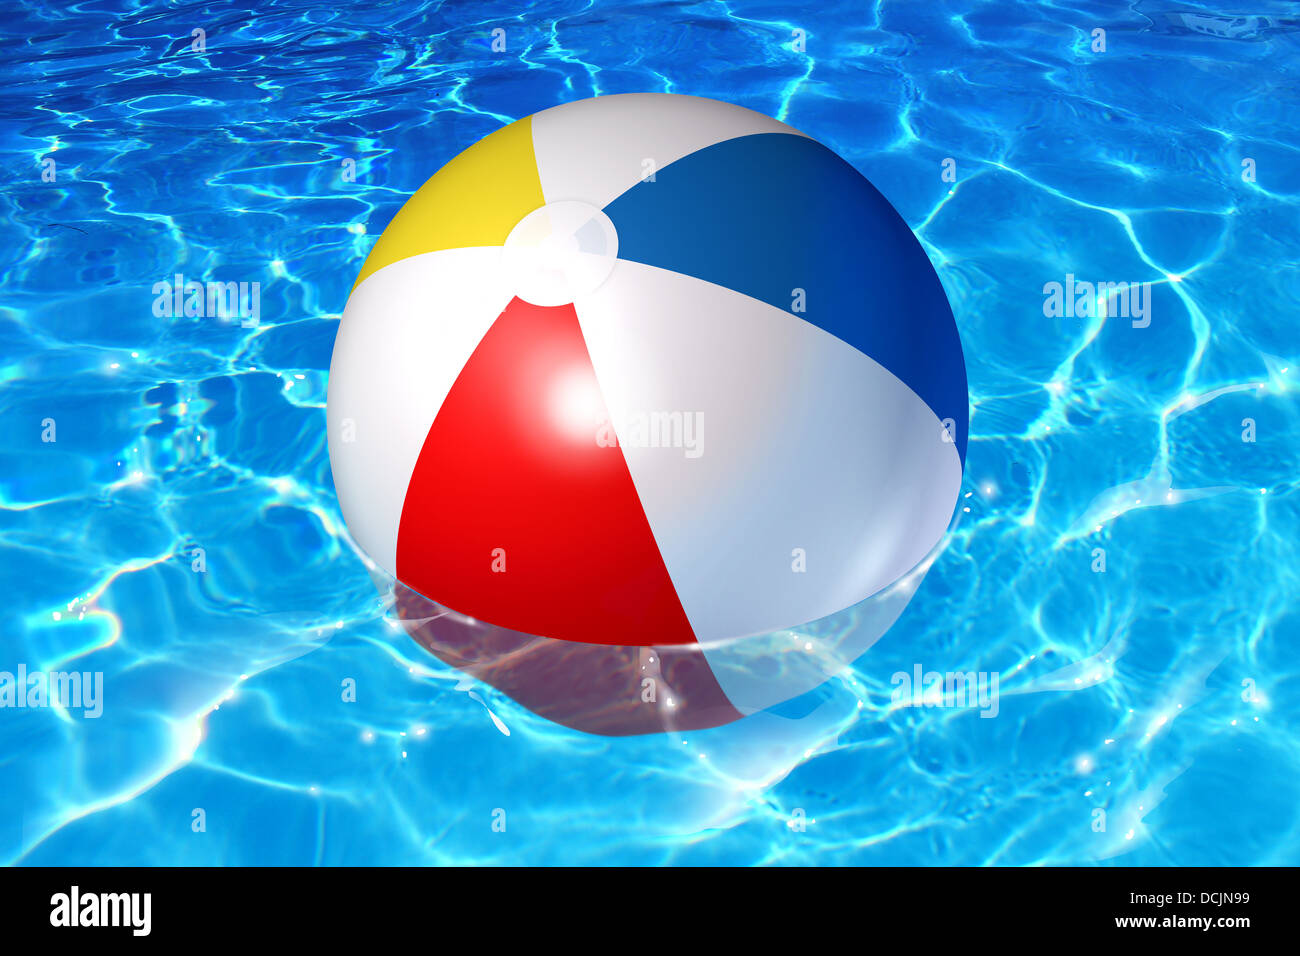 Pool Water With Beach Ball pool fun concept with an inflatable plastic beach ball floating in